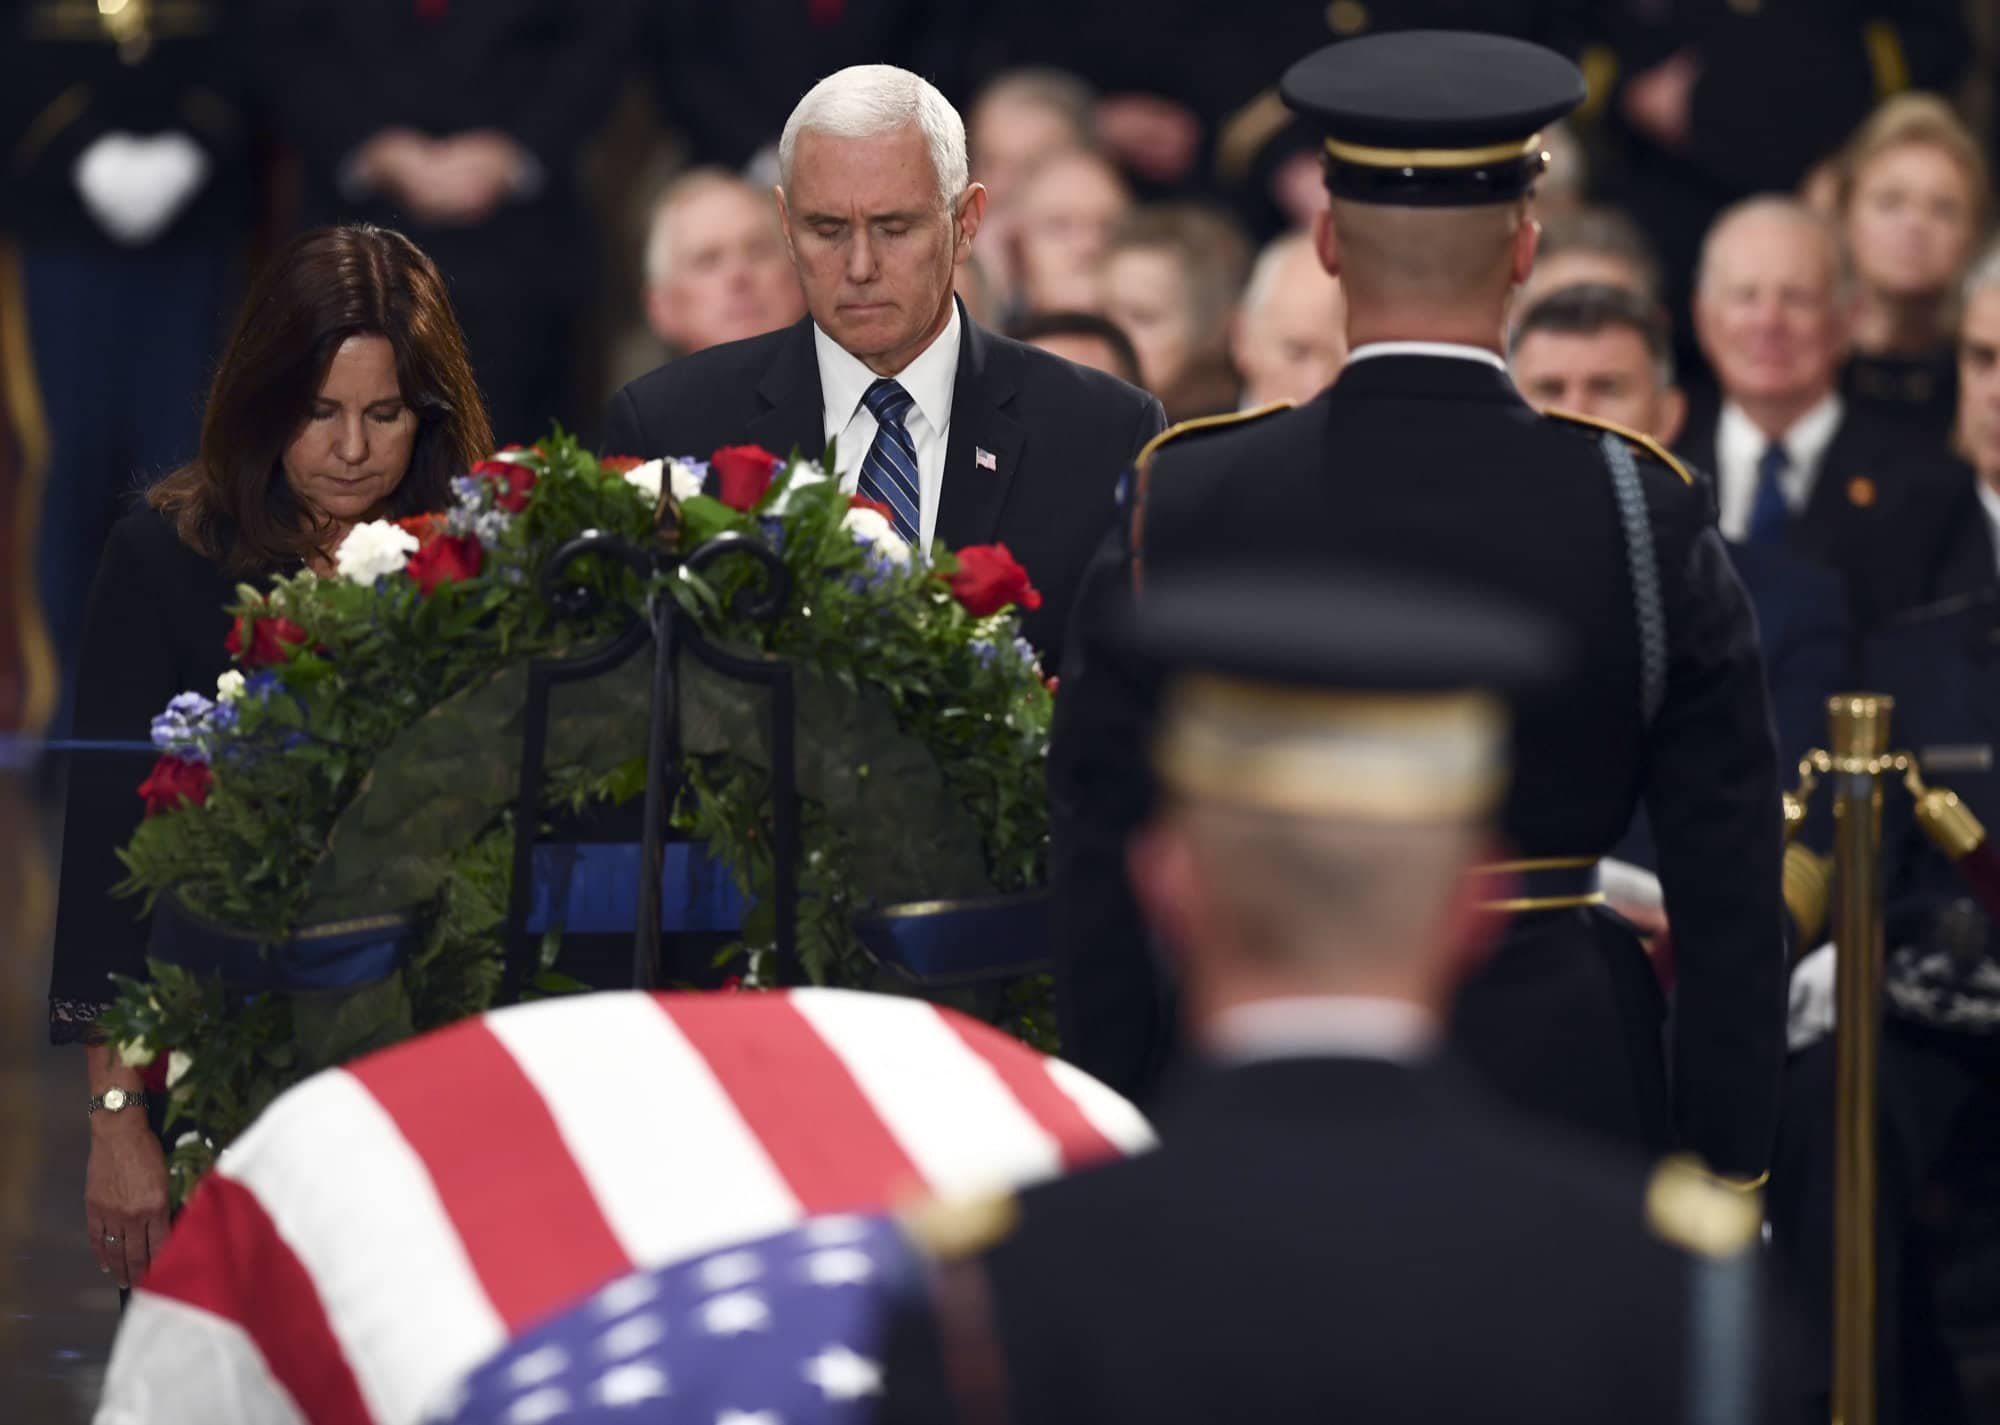 Vice President Mike Pence and Karen Pence, left, pay their respects as former President George H.W. Bush lies in state at the U.S. Capitol in Washington, Monday, 3, 2018. (Brendan Smialowski/Pool Photo via AP)